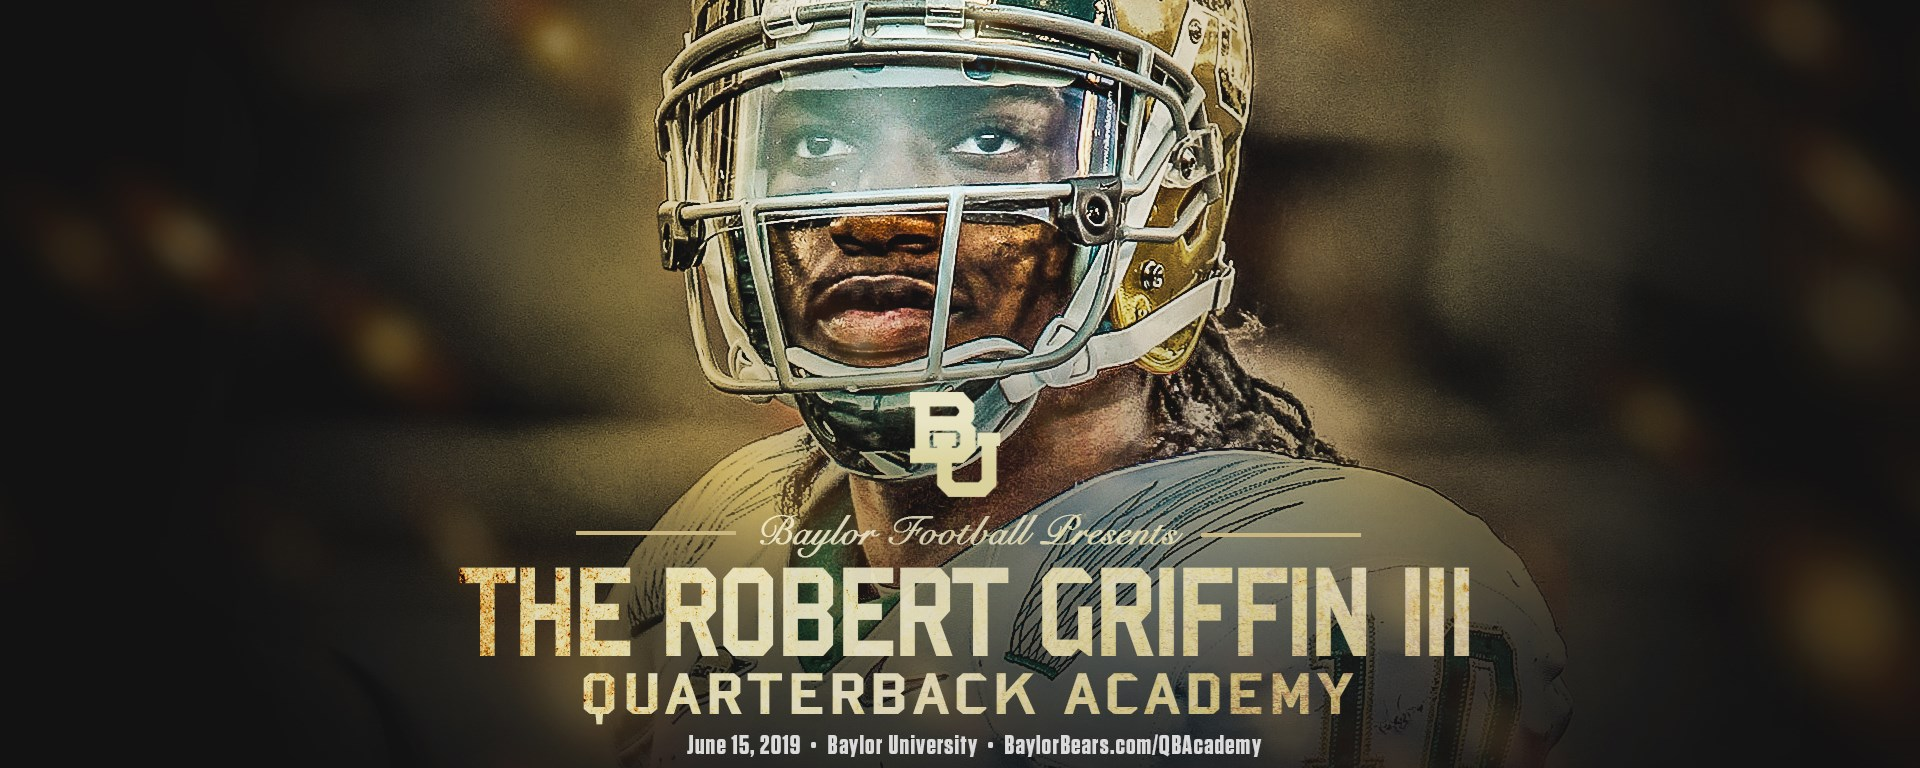 572236ca RGIII 'COMING HOME' FOR PASSING ACADEMY - Baylor University Athletics